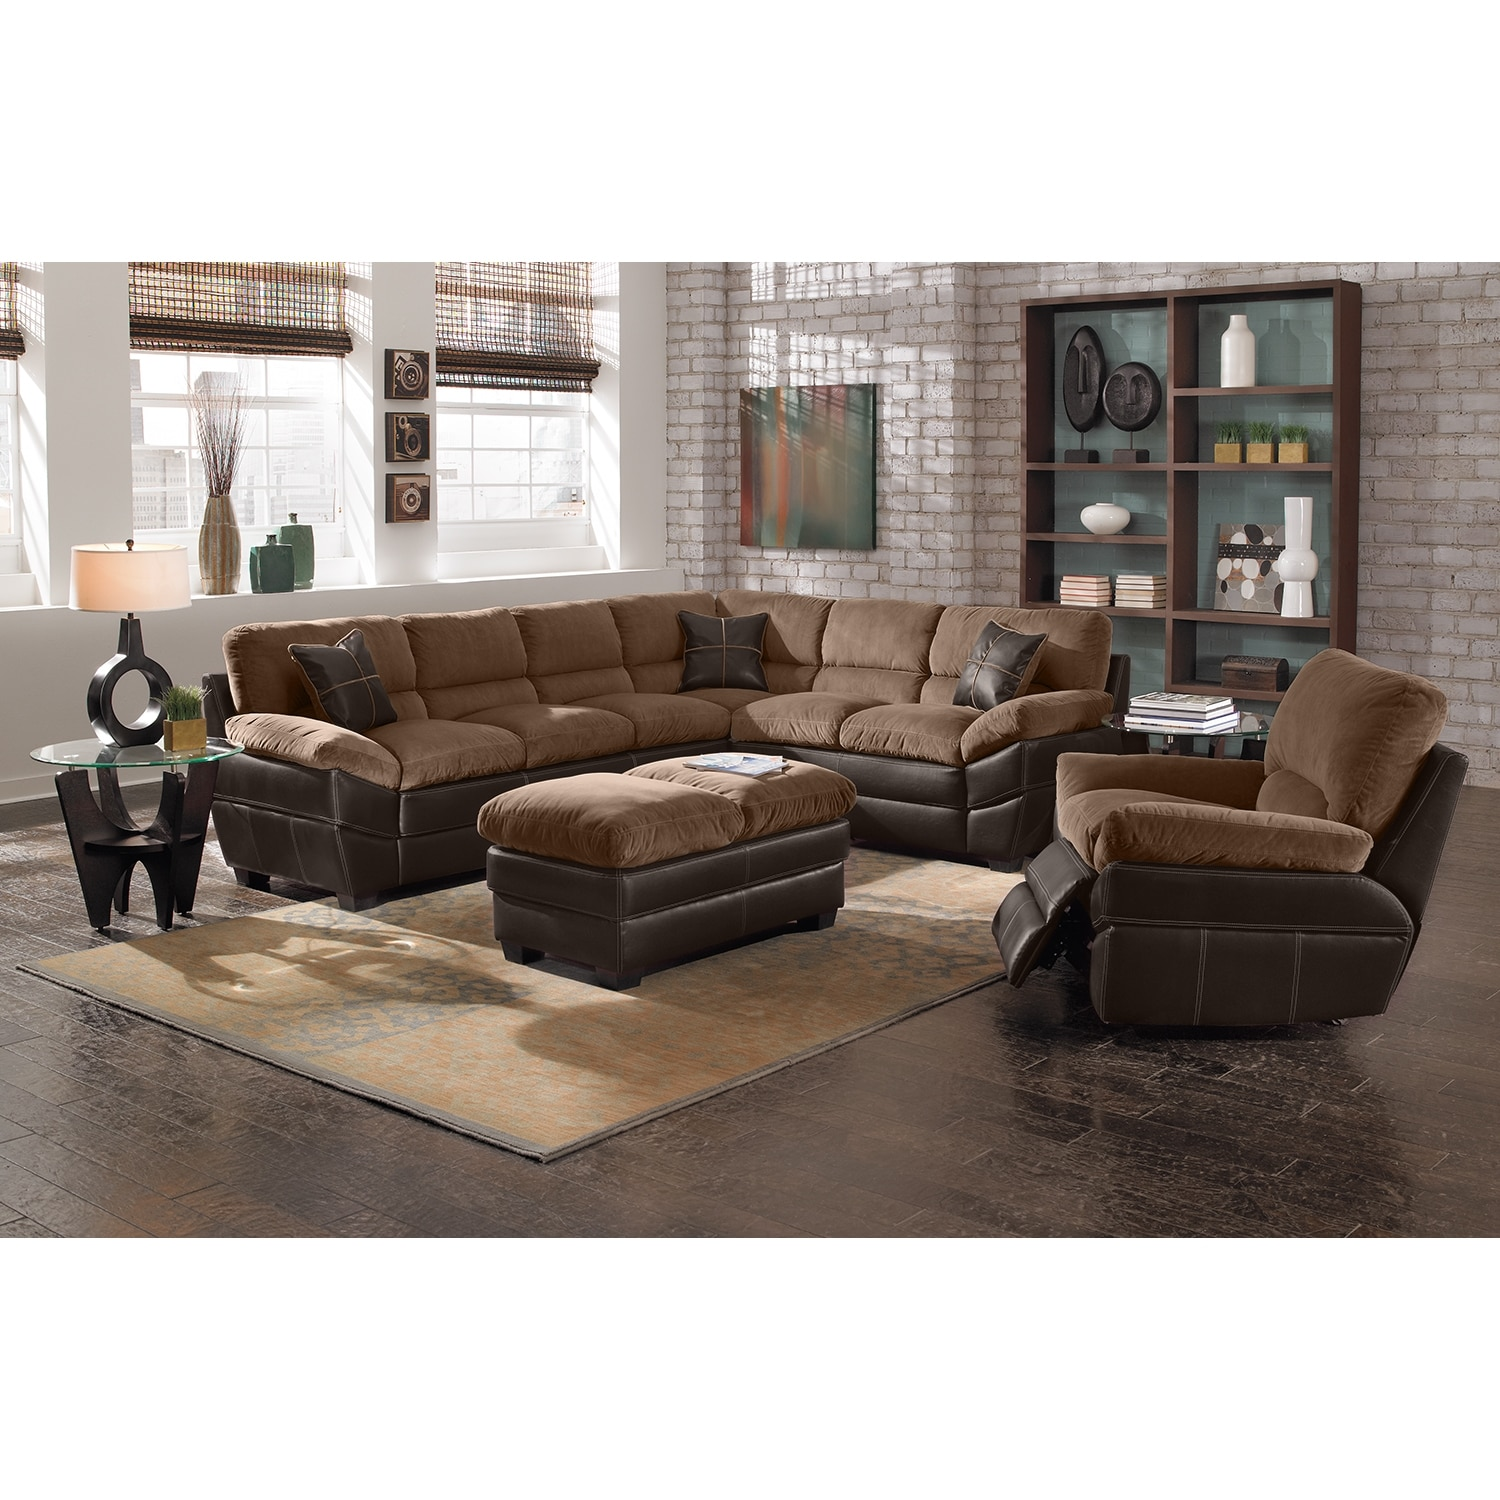 Chandler Beige Ii Upholstery 2 Pc Sectional And Cocktail Ottoman Value City Furniture